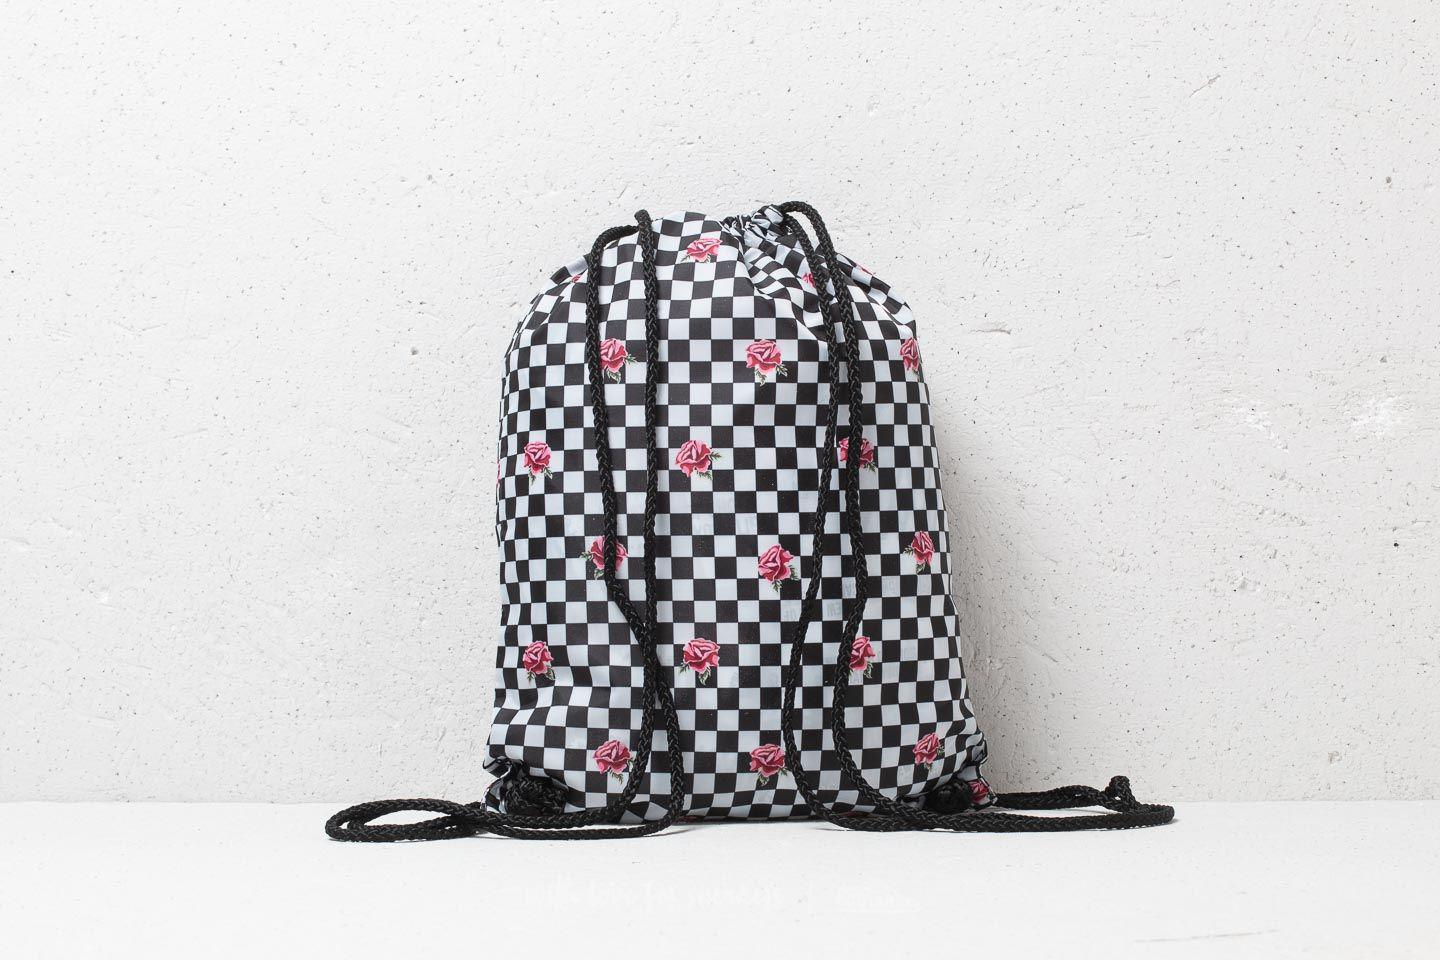 6912d2fb5a3 Lyst - Vans Benched Bag Rose Checkerboard